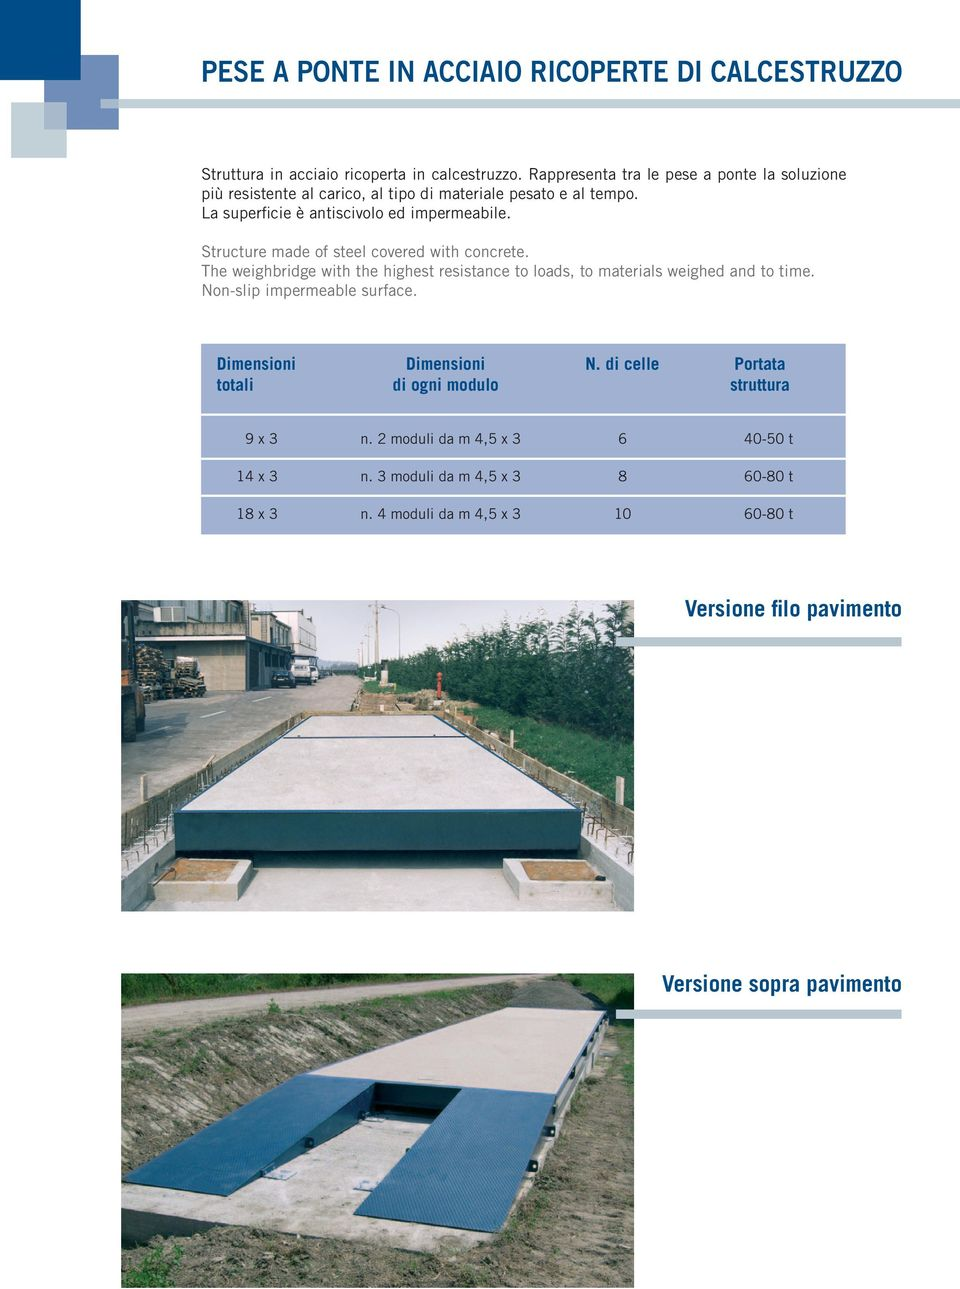 Structure made of steel covered with concrete. The weighbridge with the highest resistance to loads, to materials weighed and to time. Non-slip impermeable surface.